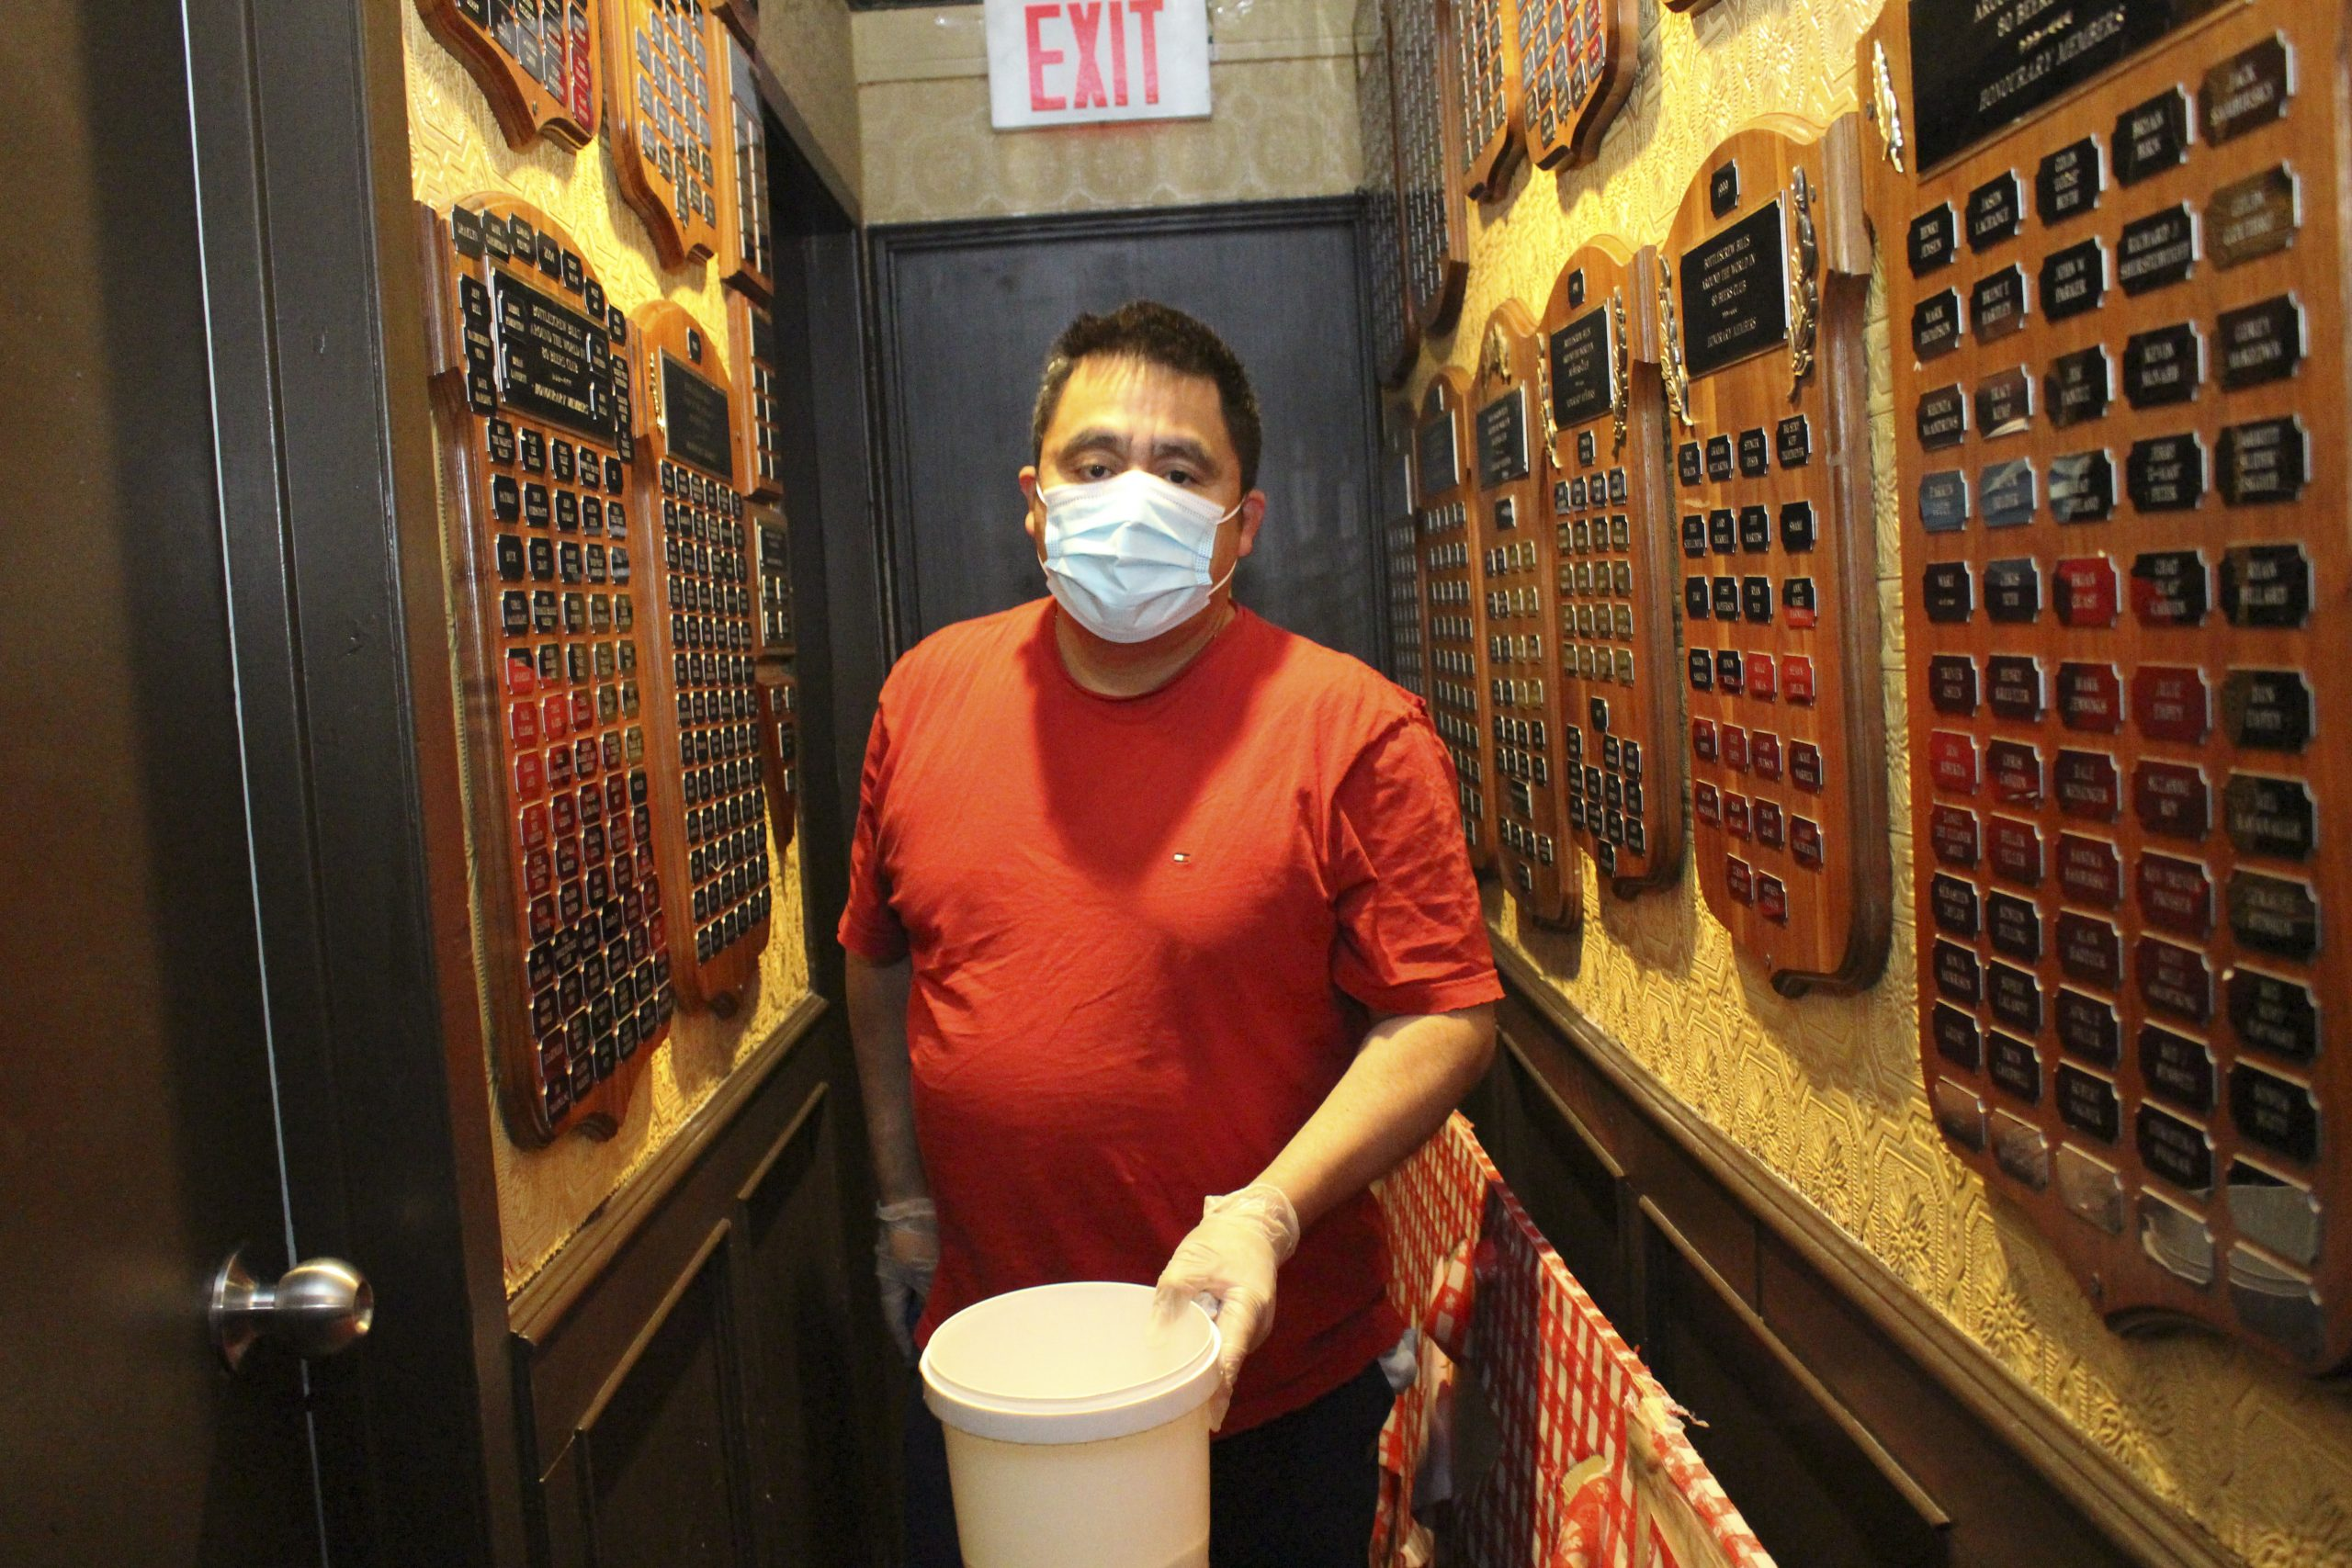 Francisco Melgar walks from one bathroom to the other in the hall that recognizes patrons that have been ÒAround-The-World-in-80-BeersÓ in Bottlescrew BillÕs in Calgary on April 15, 2021. ÒAround-The-World-in-80-BeersÓ is a contest that Bottlescrew BillÕs has where a patron try to fill out a passport that features their selection of beers from around the world. (Photo by Alejandro Melgar/SAIT)